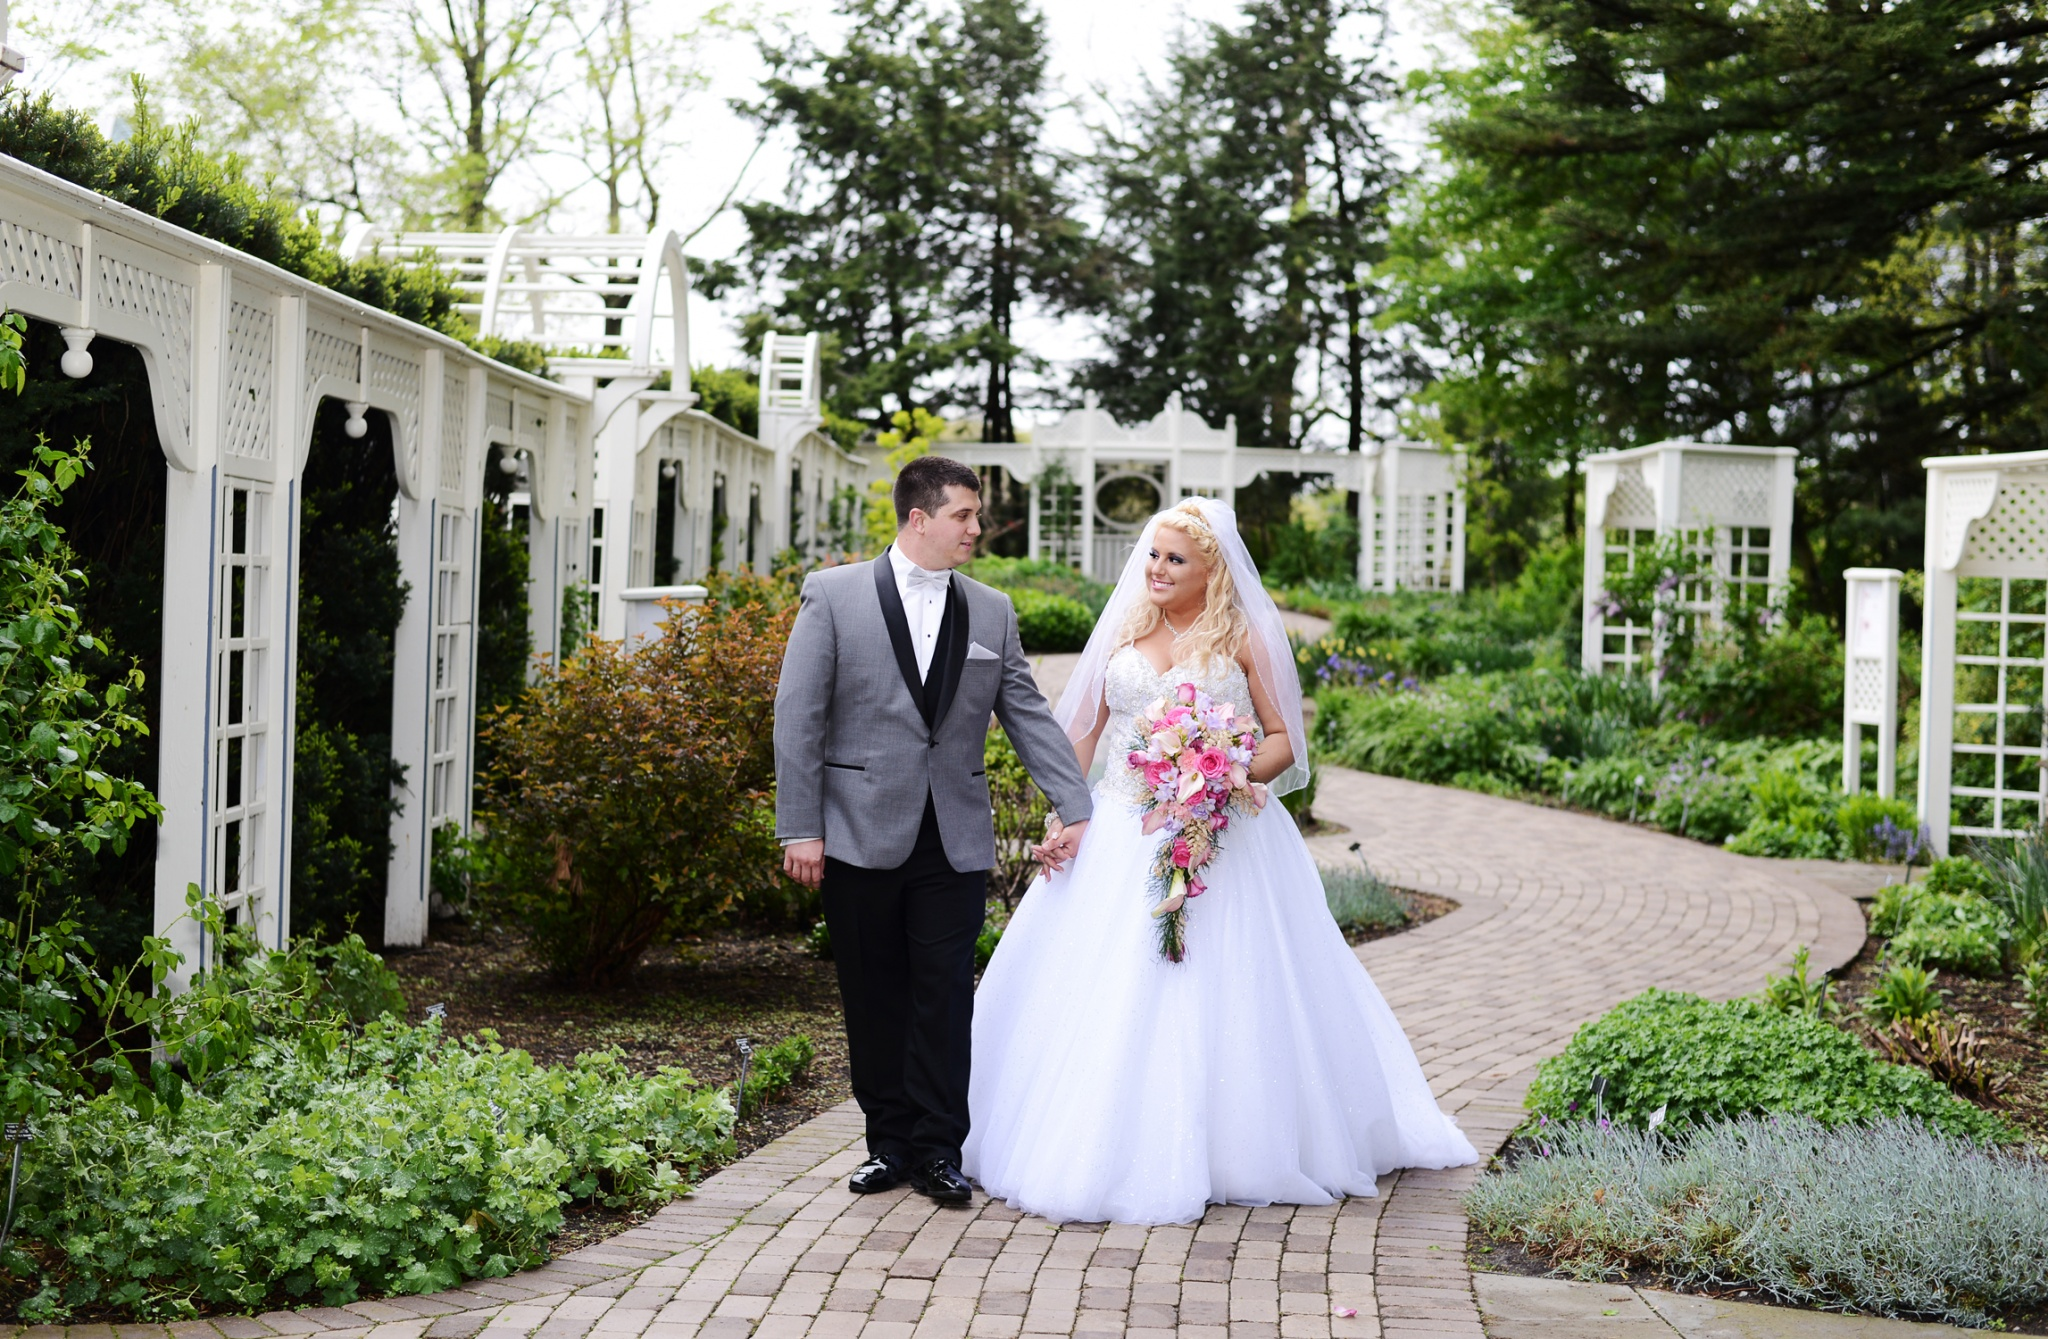 Ashley & Nick | Wedding | Our Lady of the Holy Rosary Church | Lowellvielle, OH |  Poland Fire District, Station 93 | Mill Creek Park | Fellows Riverside Gardens | Mahoning Country Club | Youngstown Wedding Photographer